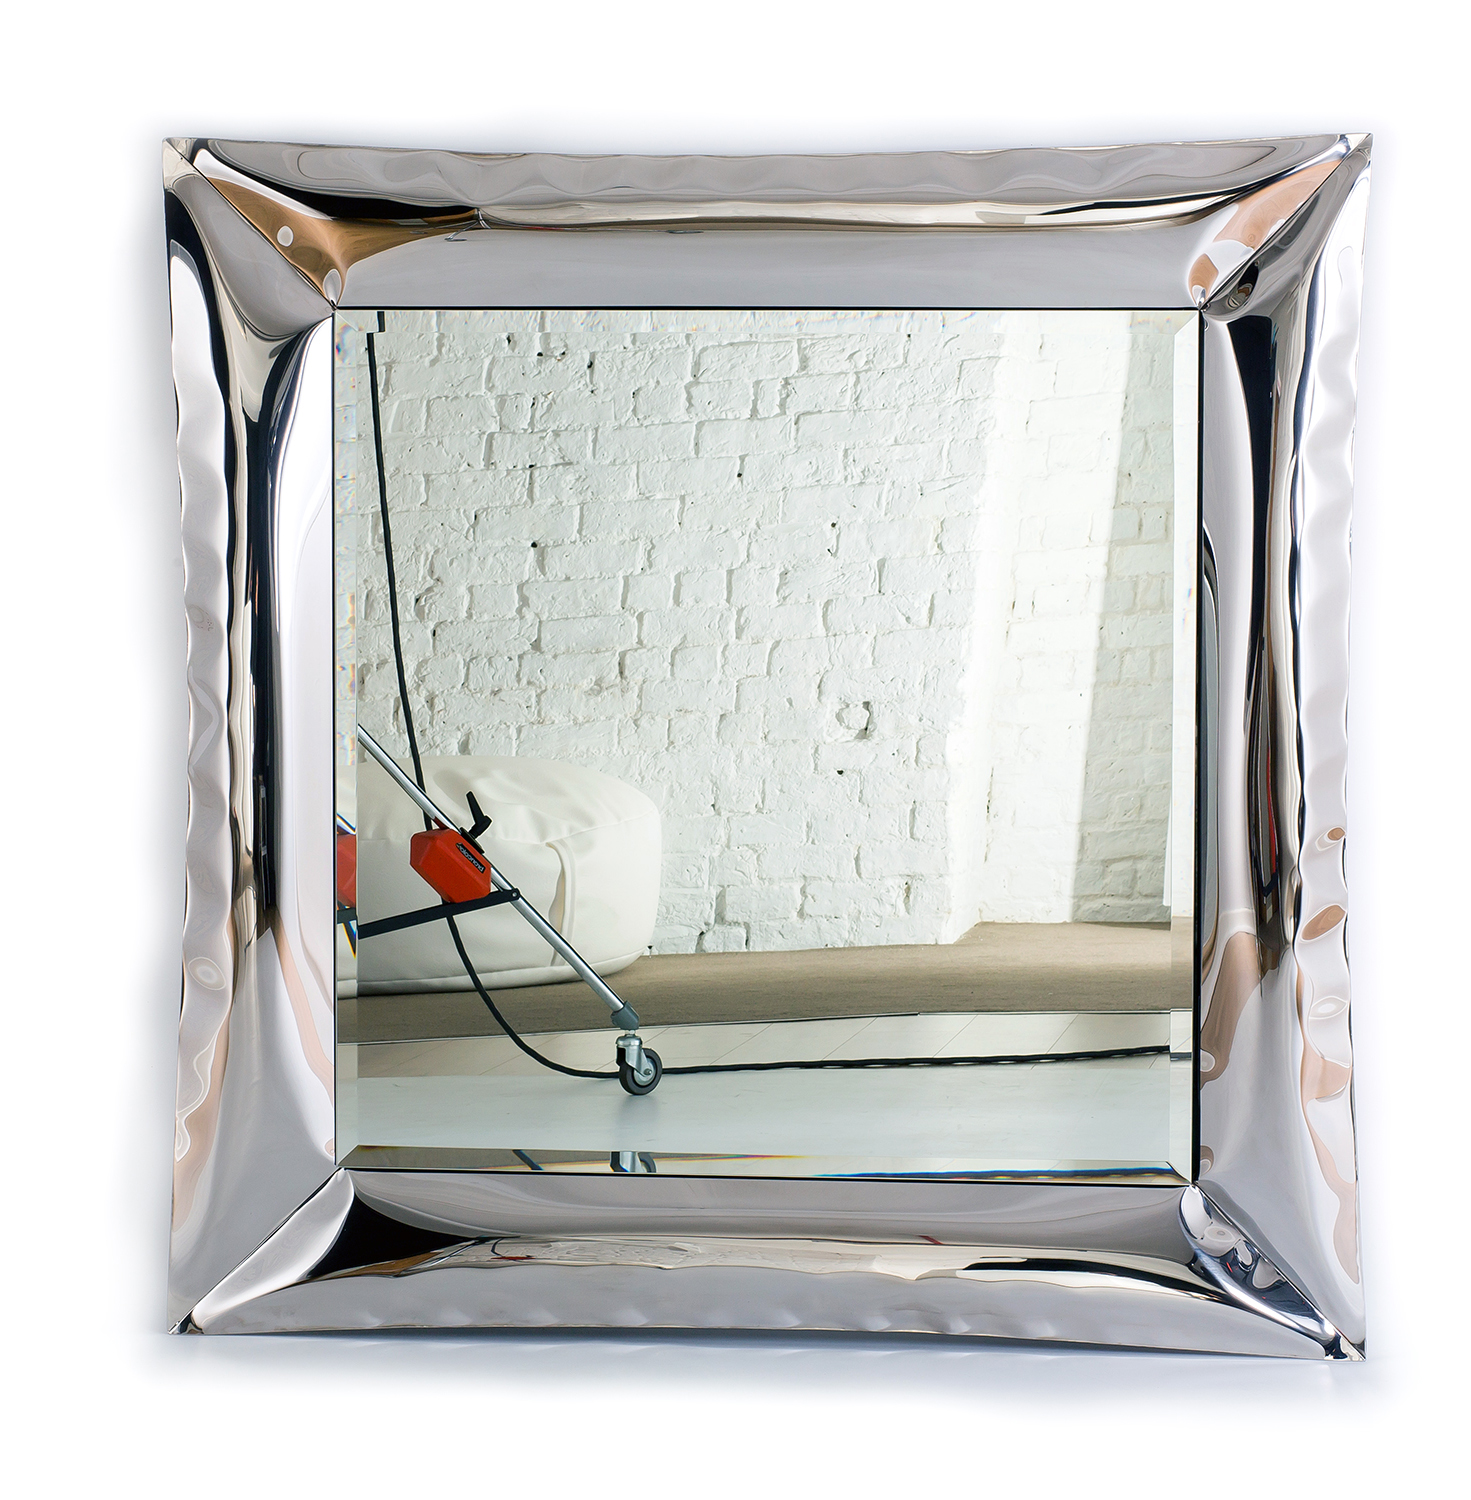 Featured Product:  Air Frame Mirror (Available to order online in standard finish mirror polished or satin stainless steel frame)